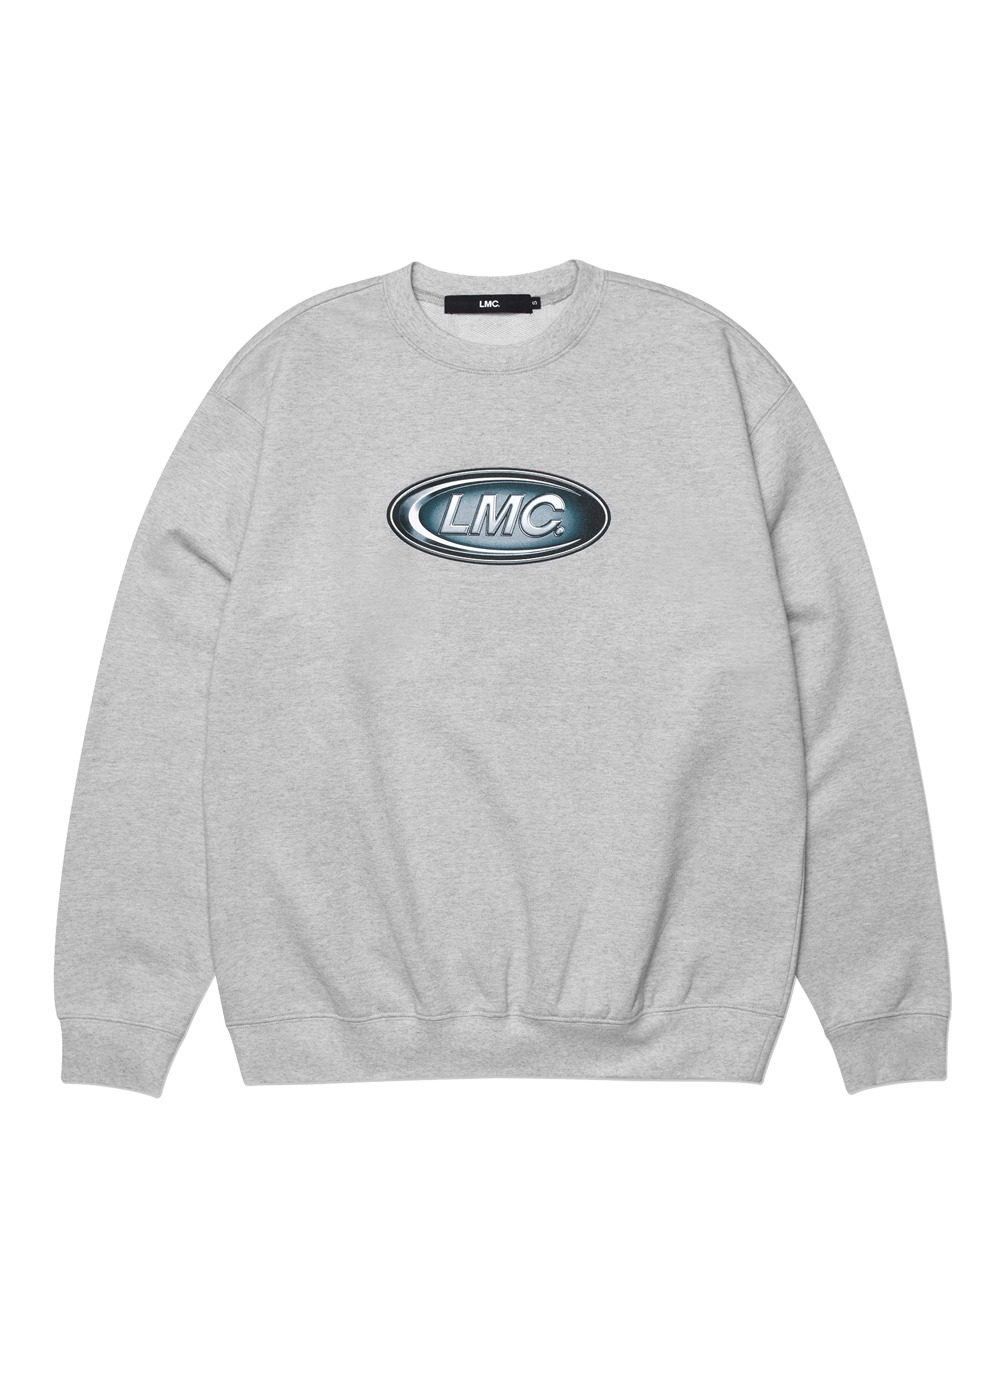 LMC CONVEX CO SWEATSHIRT heather gray